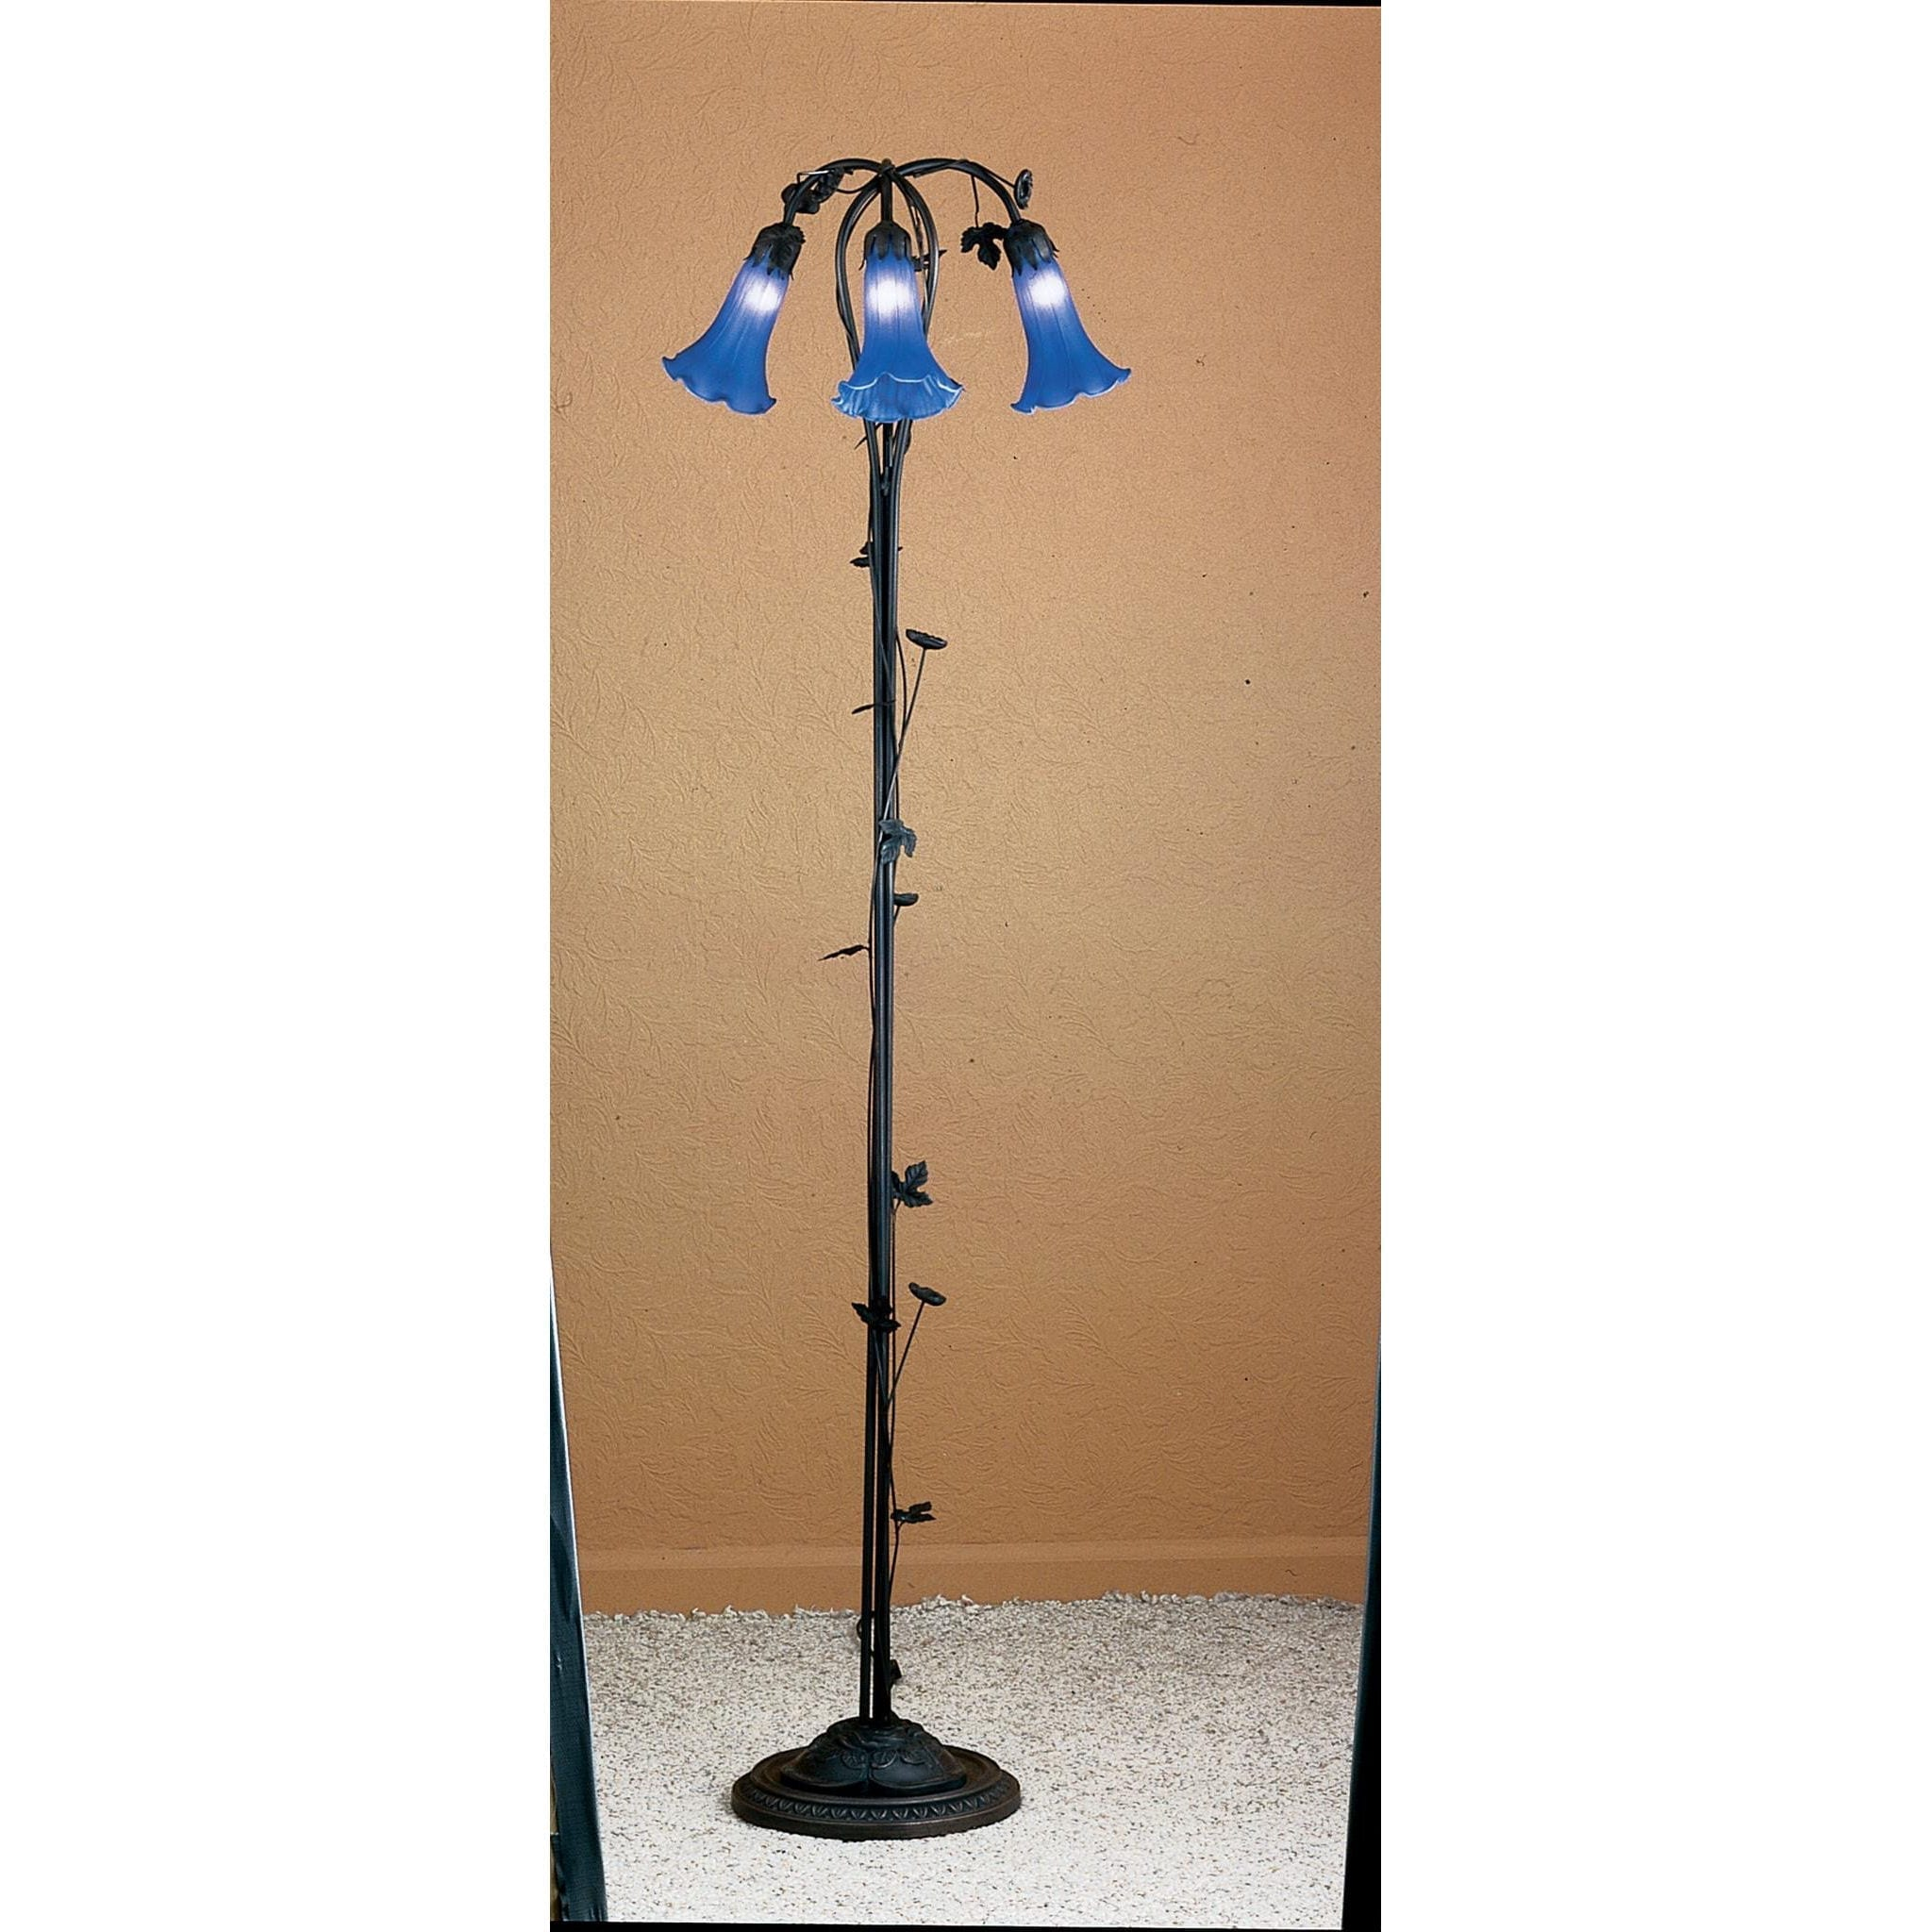 Excellent Floor Lamp 59 Inch H Blue Pond Lily 3 Lights hand crafted art VW58